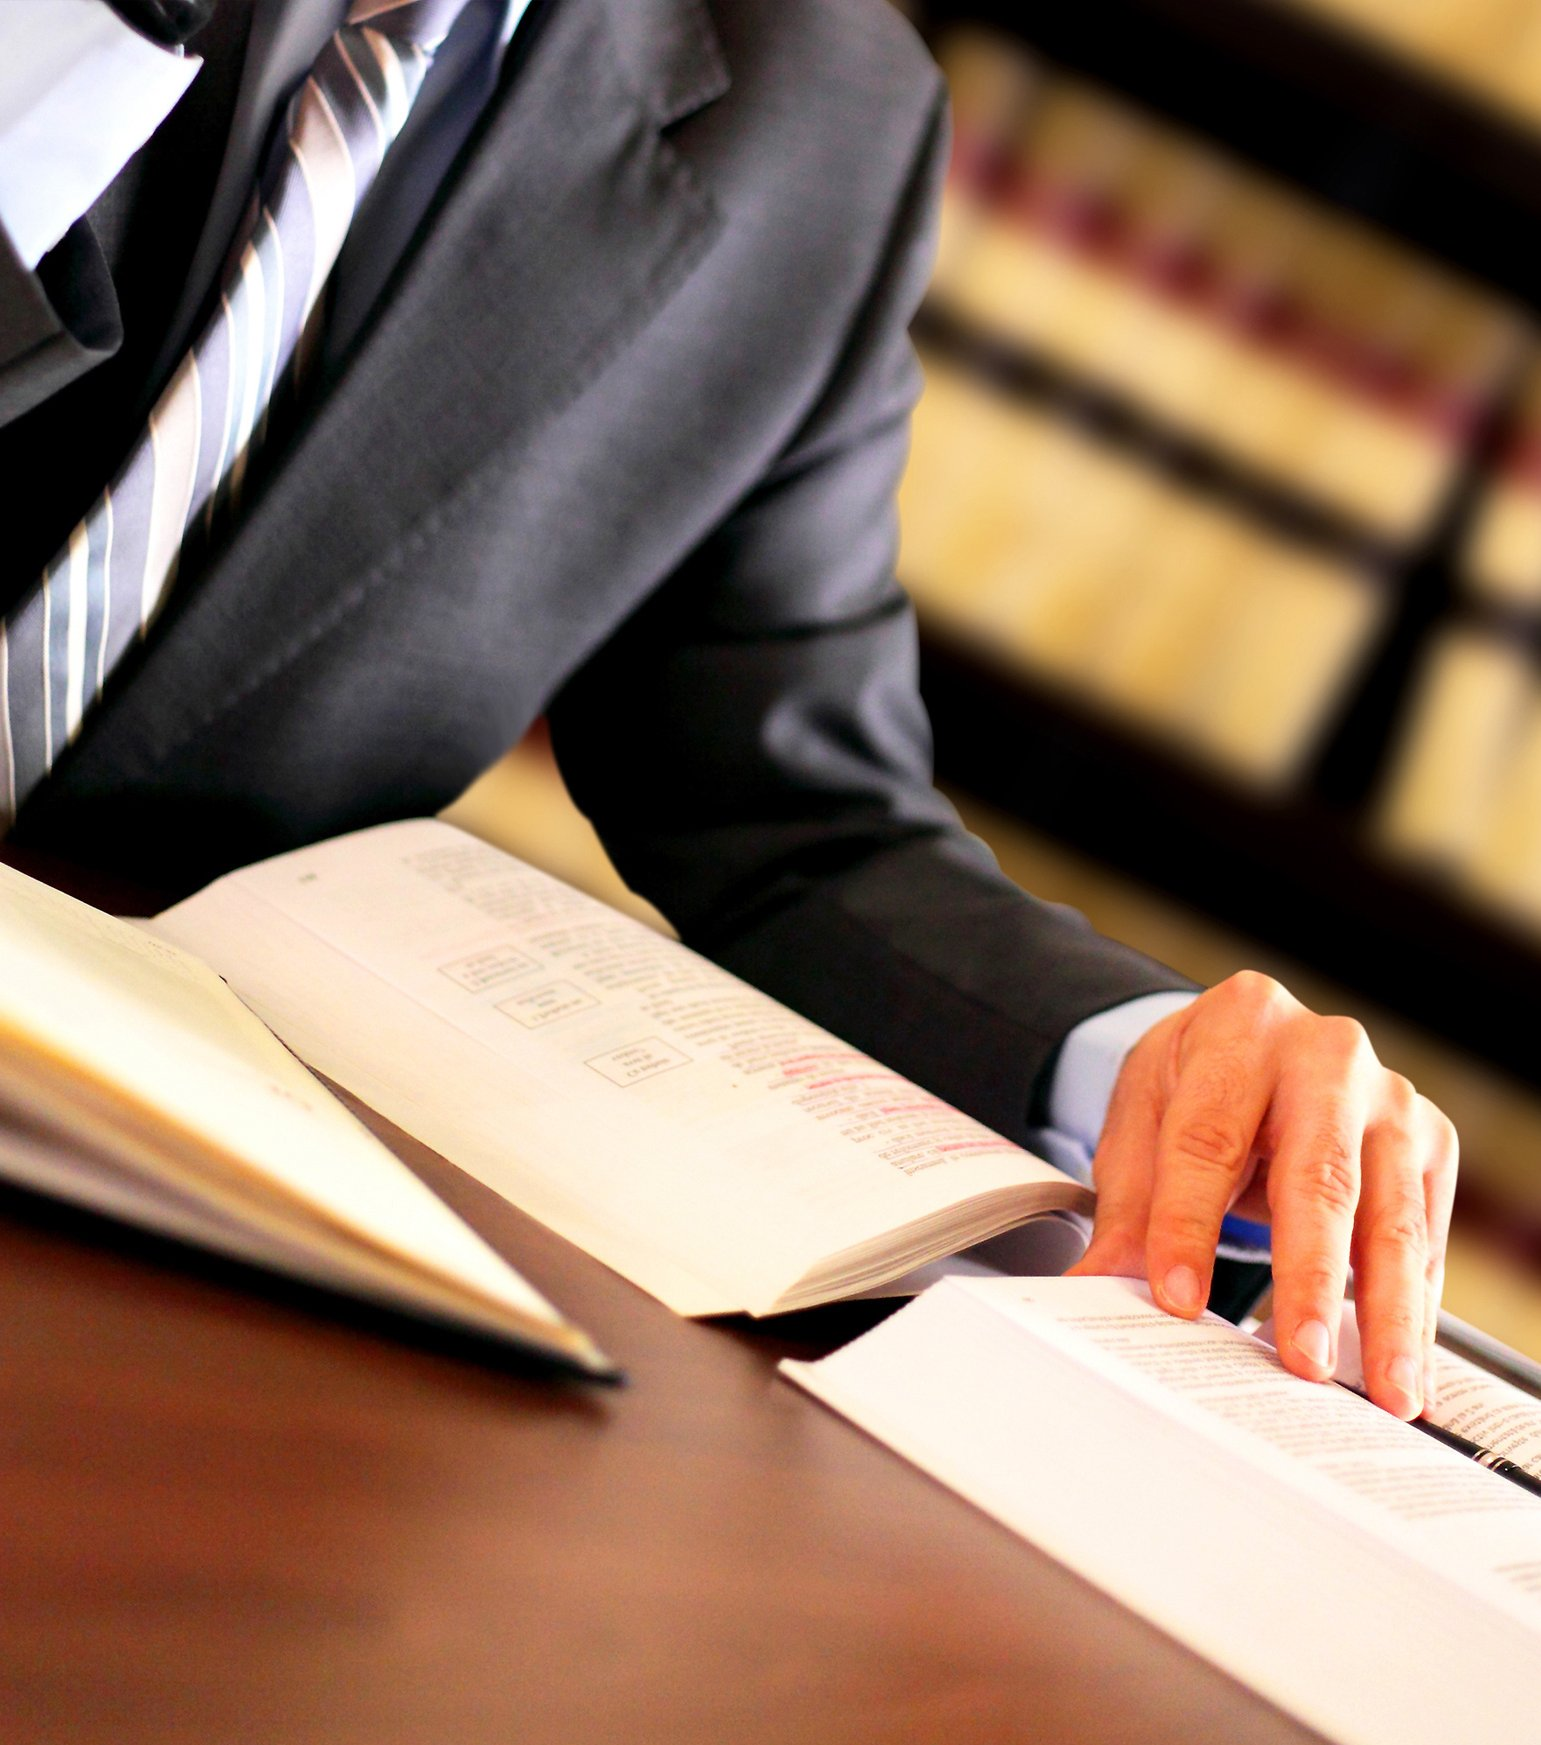 Lawyer reading through law books